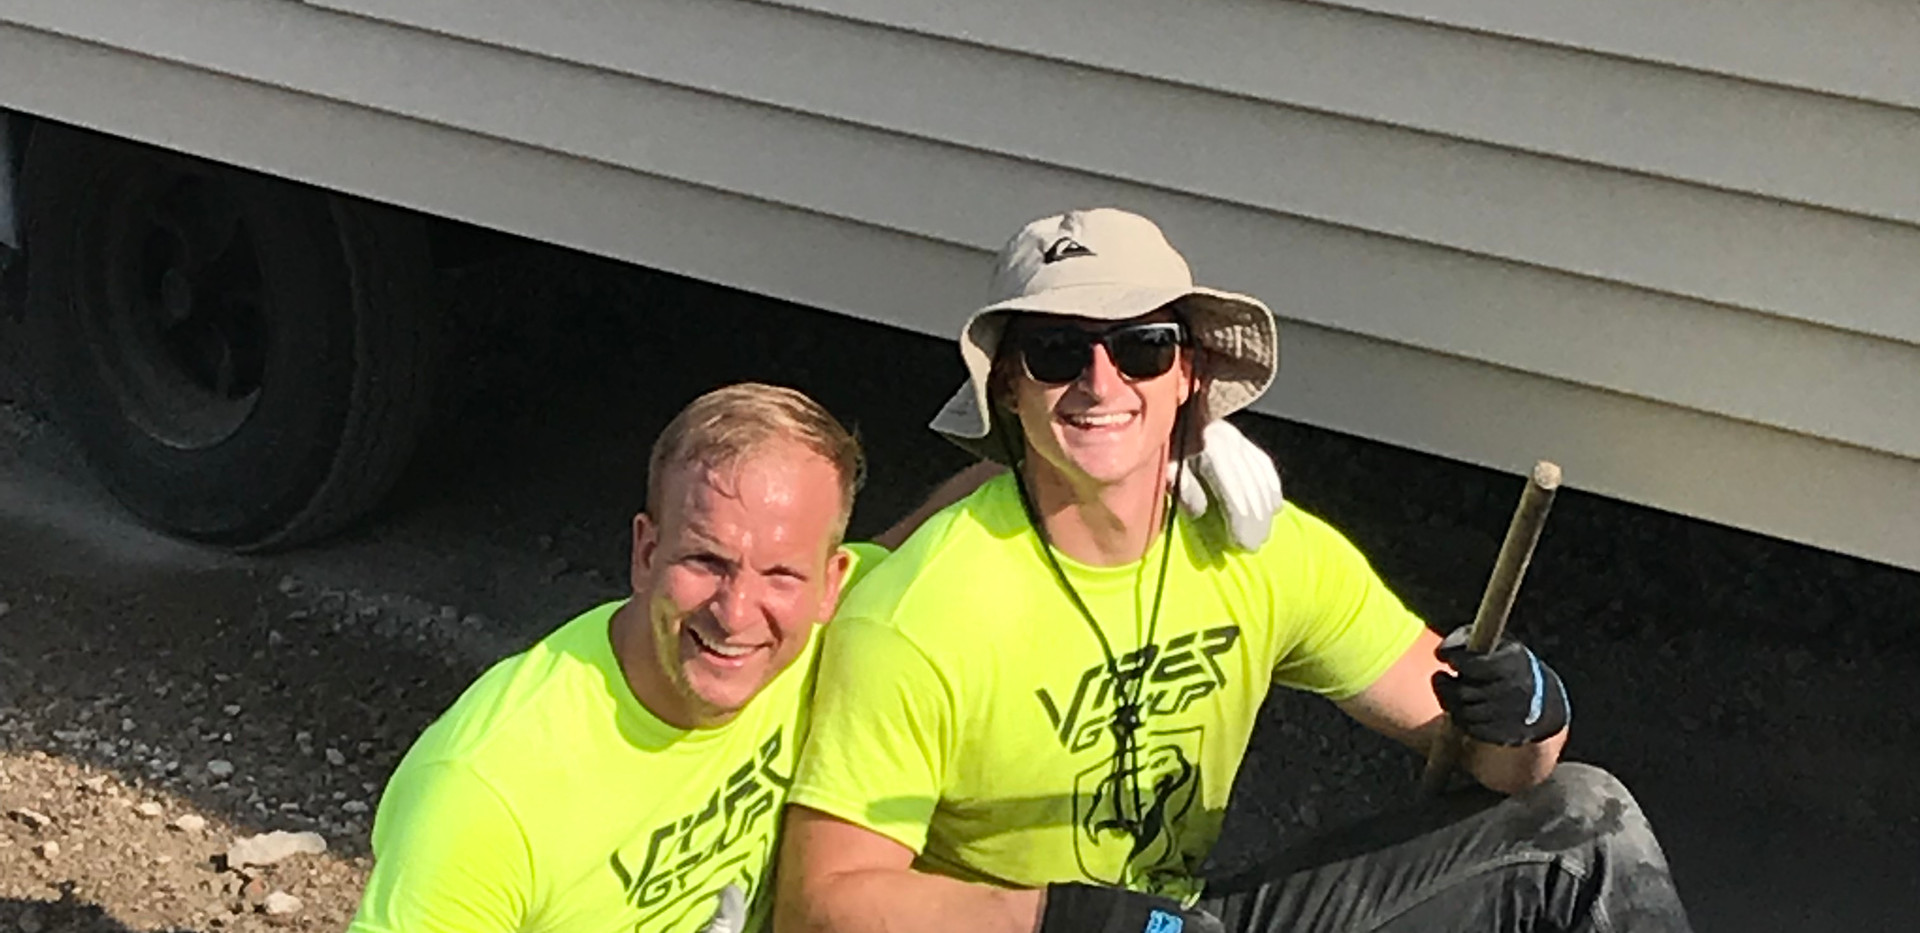 Andrew Keel and John S. installing mobile homes in IL